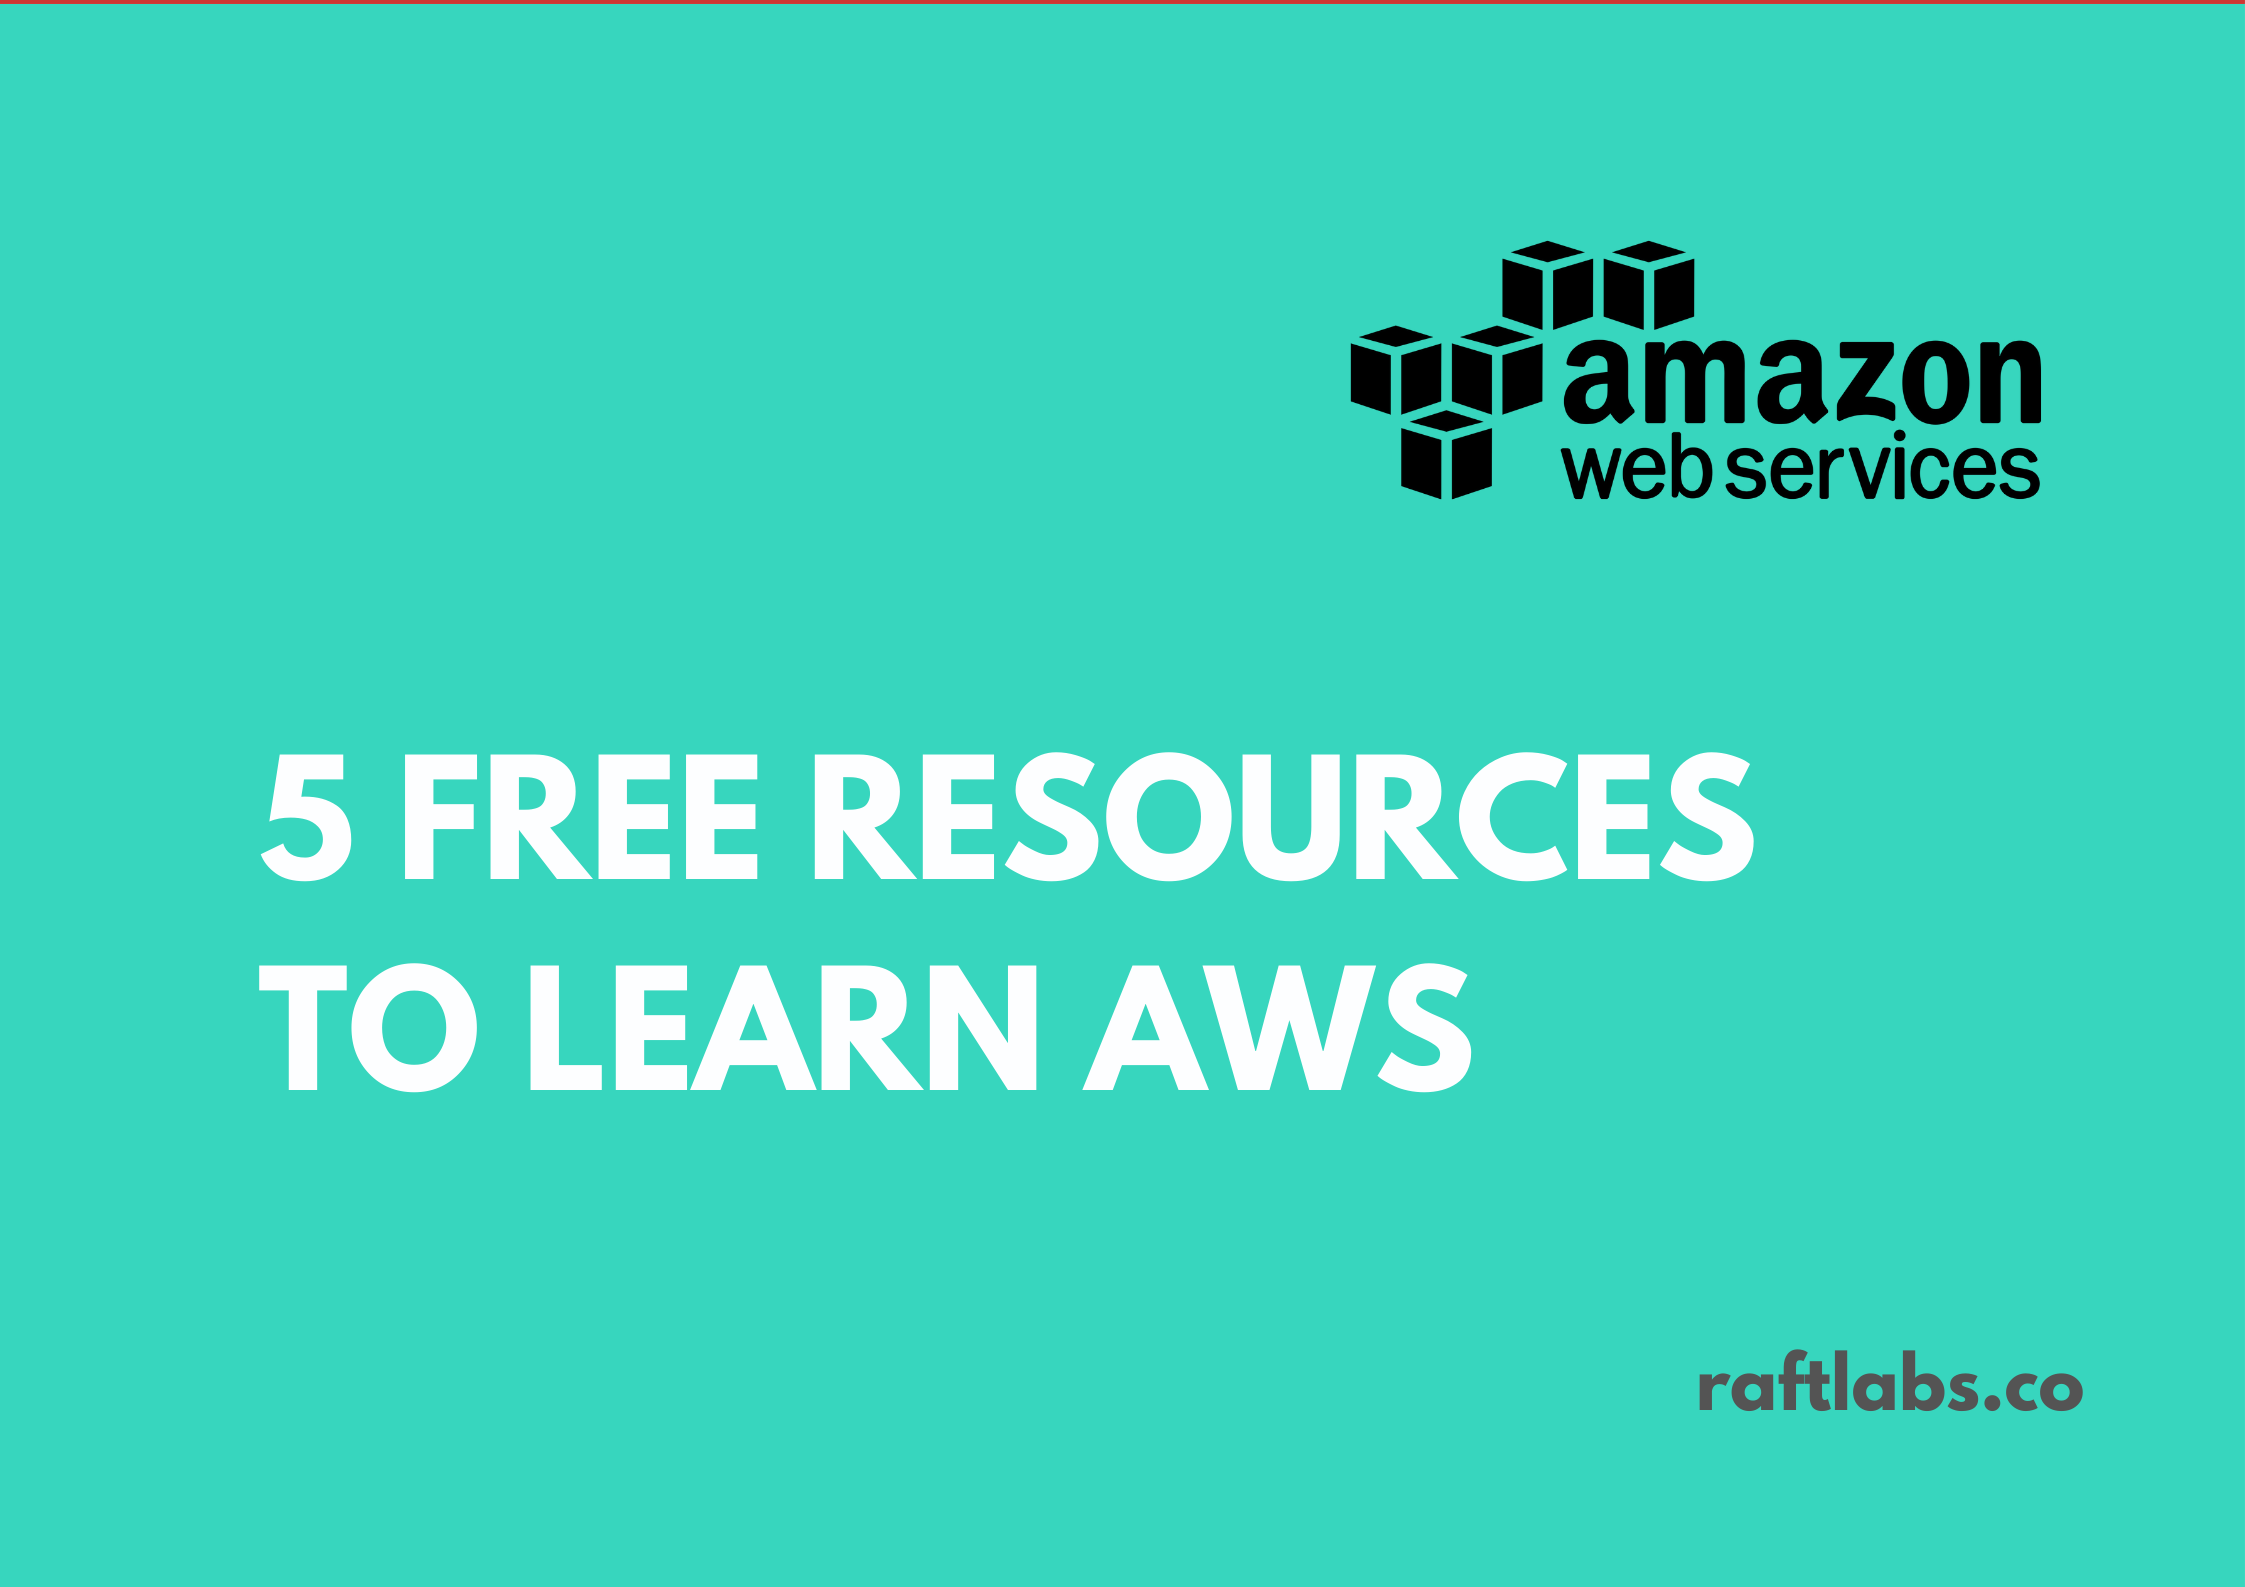 5 free resources to learn AWS with AWS logo - raftlabs.co